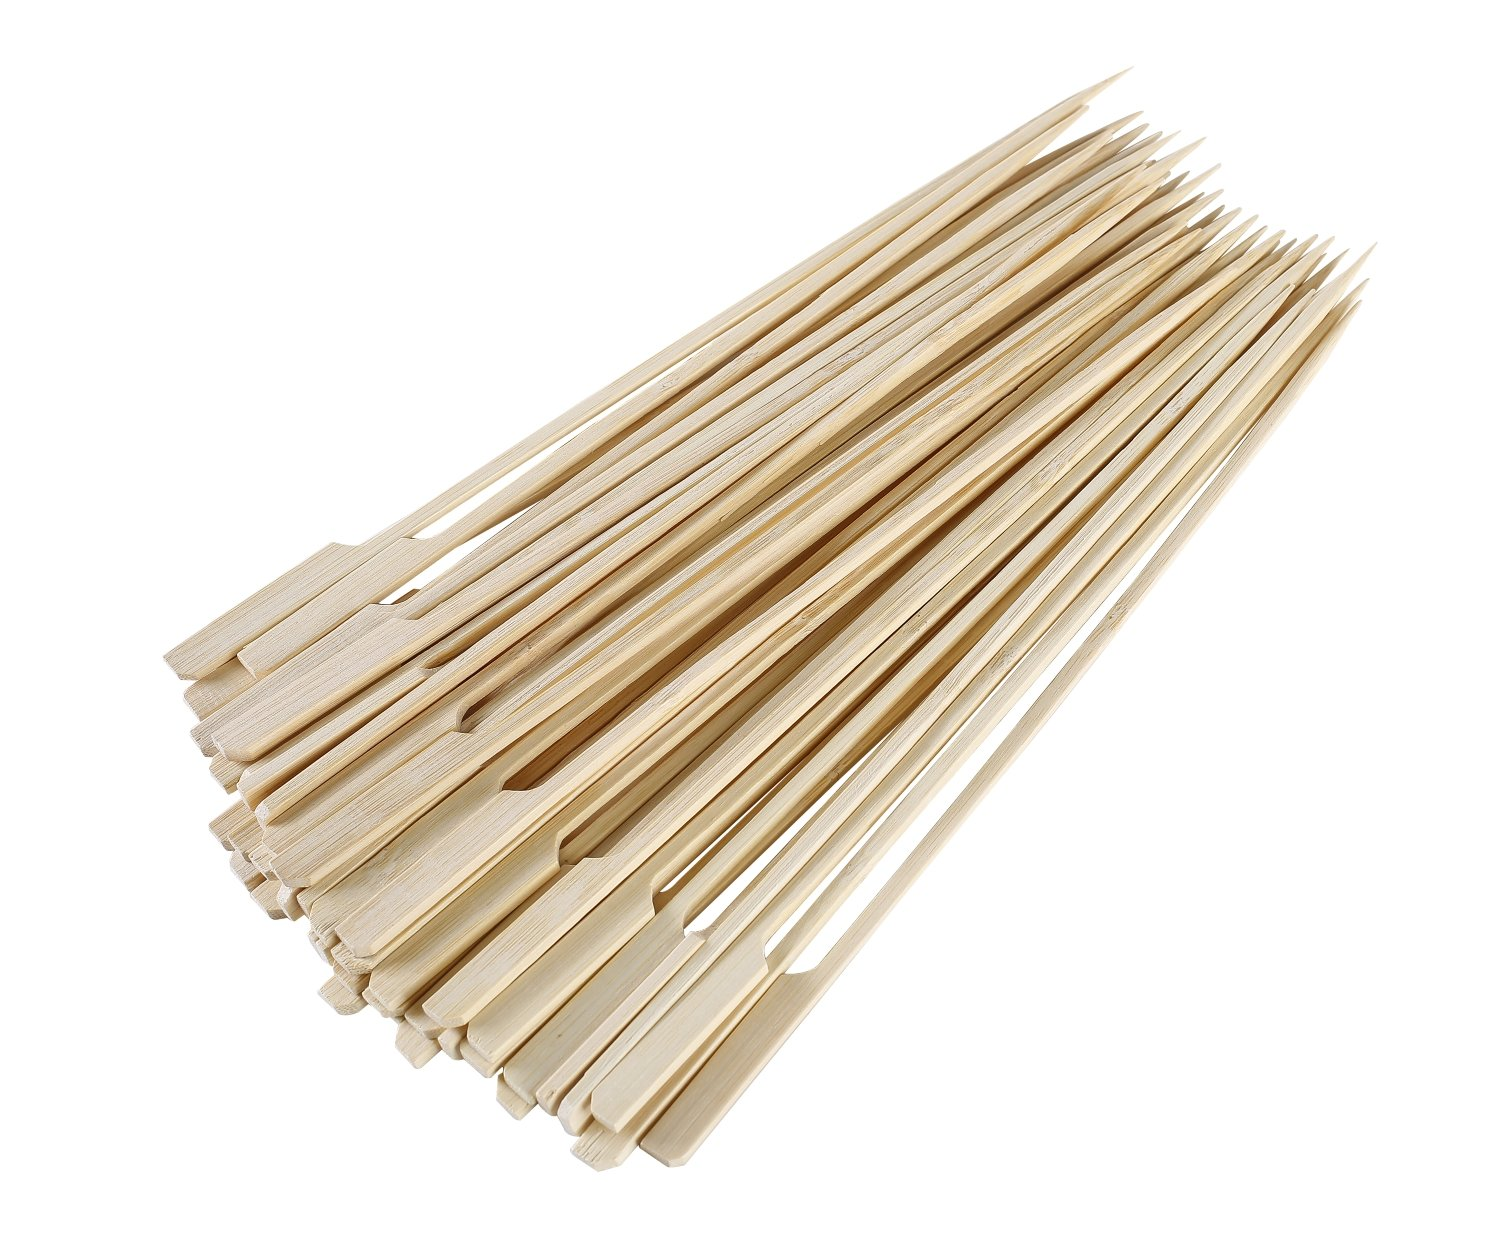 Gmark Bamboo Paddle Skewers 12'' 100pc/Bag, Kabob Skewers, BBQ Skewers for Outdoor Grilling GM1075